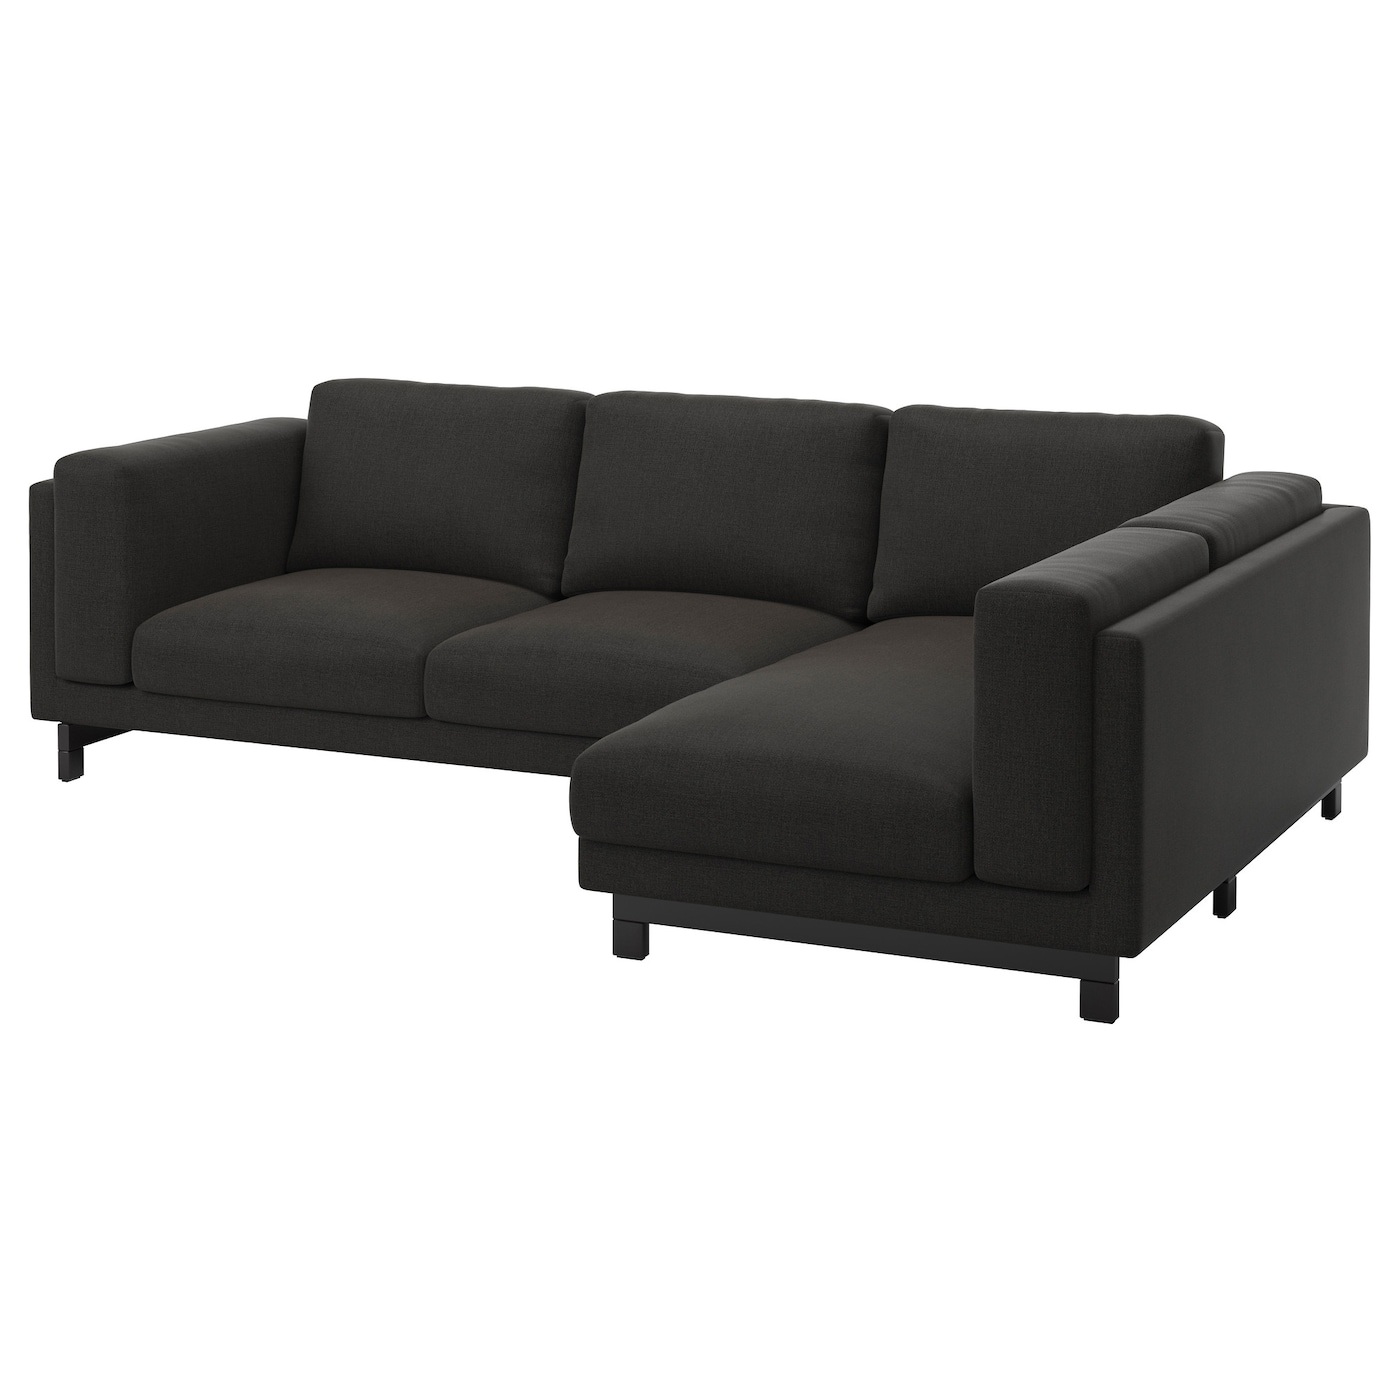 3 seater sofa ikea for 5 seater sofa with chaise